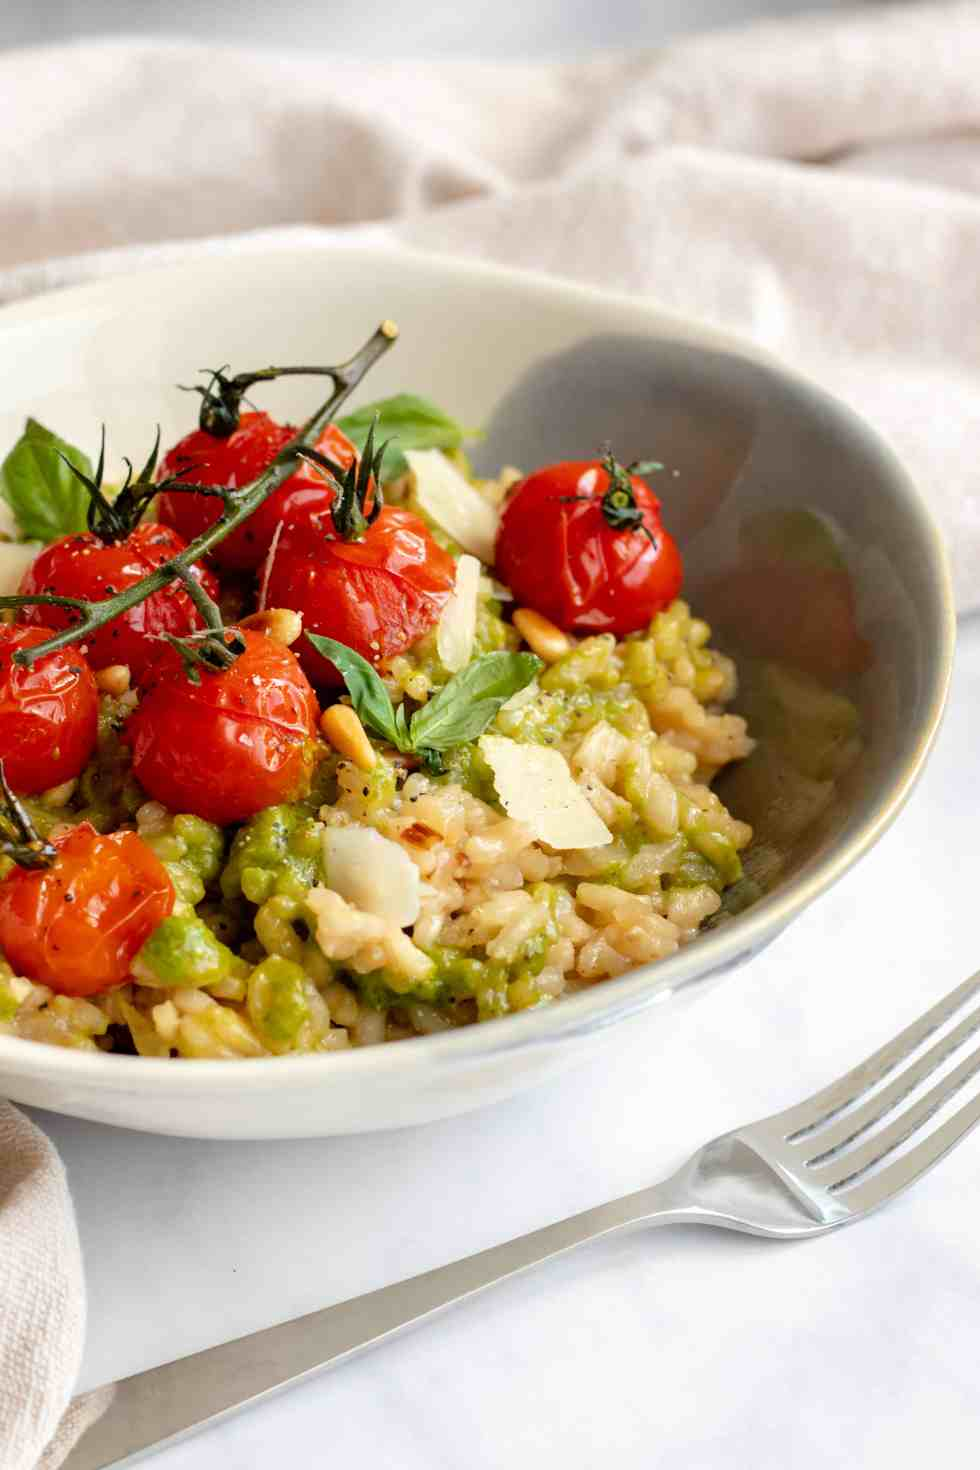 Baked Pesto Risotto with Roasted Tomatoes - Vegan, GF & healthy! Georgie Eats.